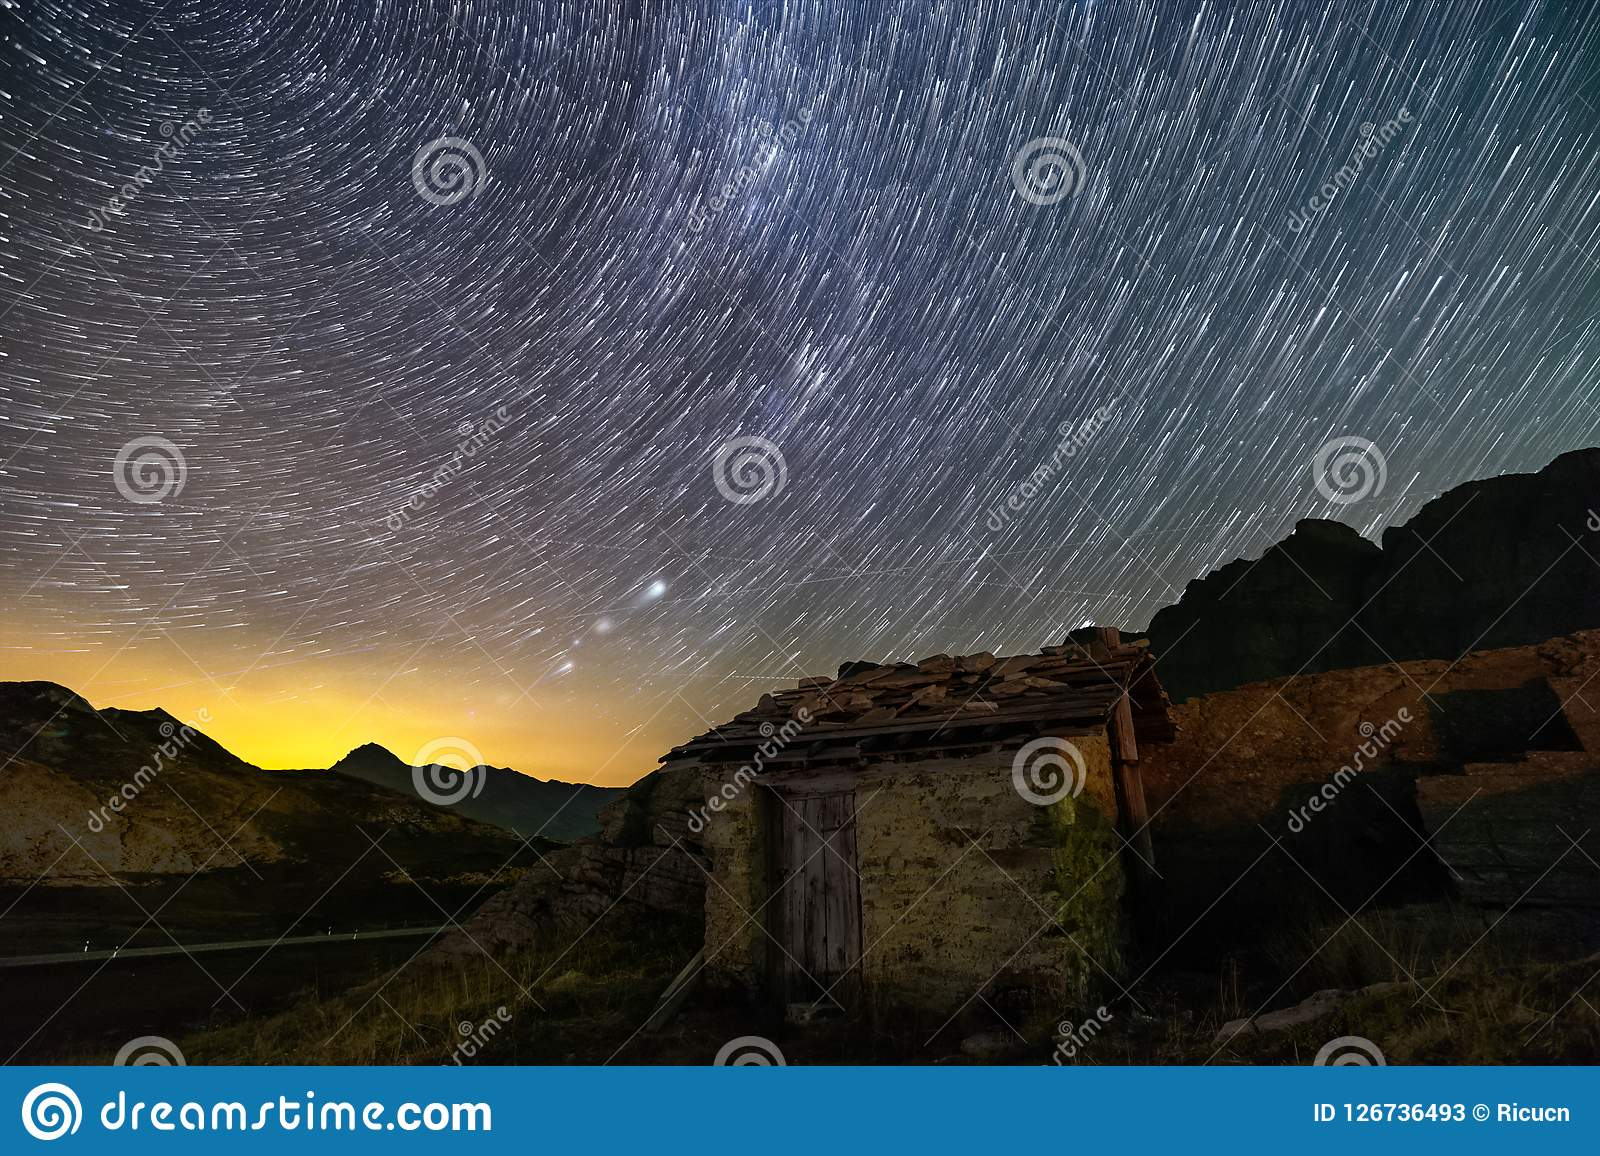 Stars trails and isolated house in switzerland alps